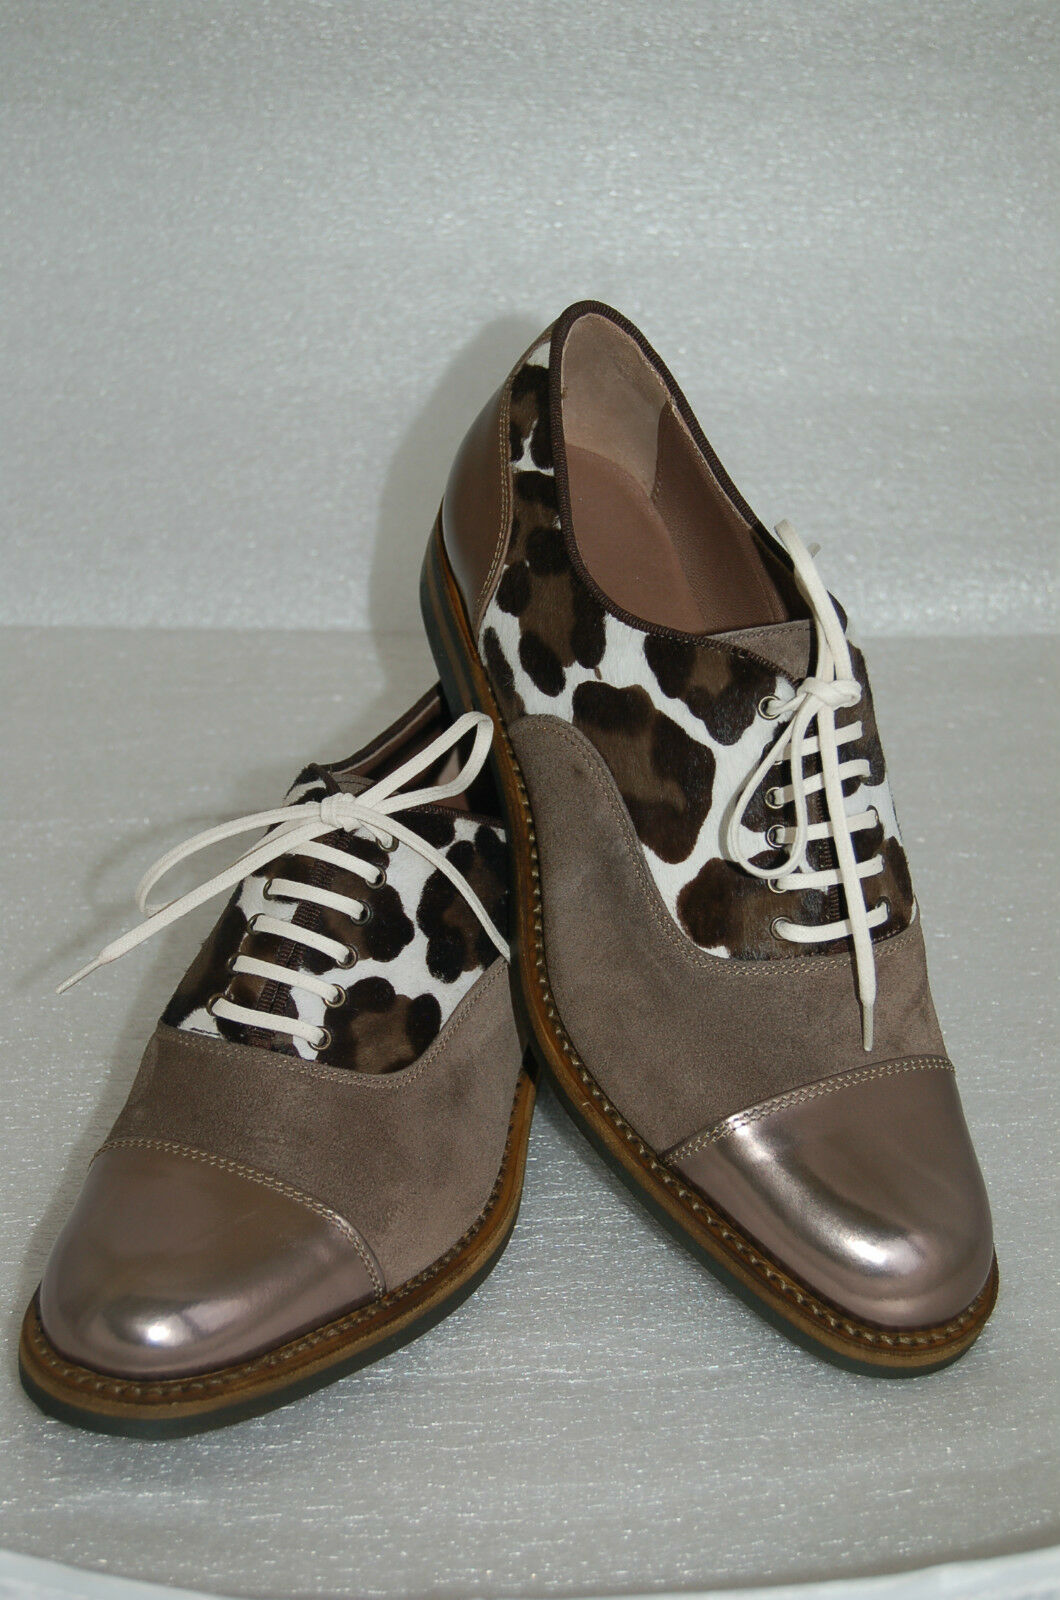 WOMAN CAPTOE OXFORD - 40 eu- BRONZE CALF/SUEDE/ PRINTED PONY- LTH SOLE+DAINITE